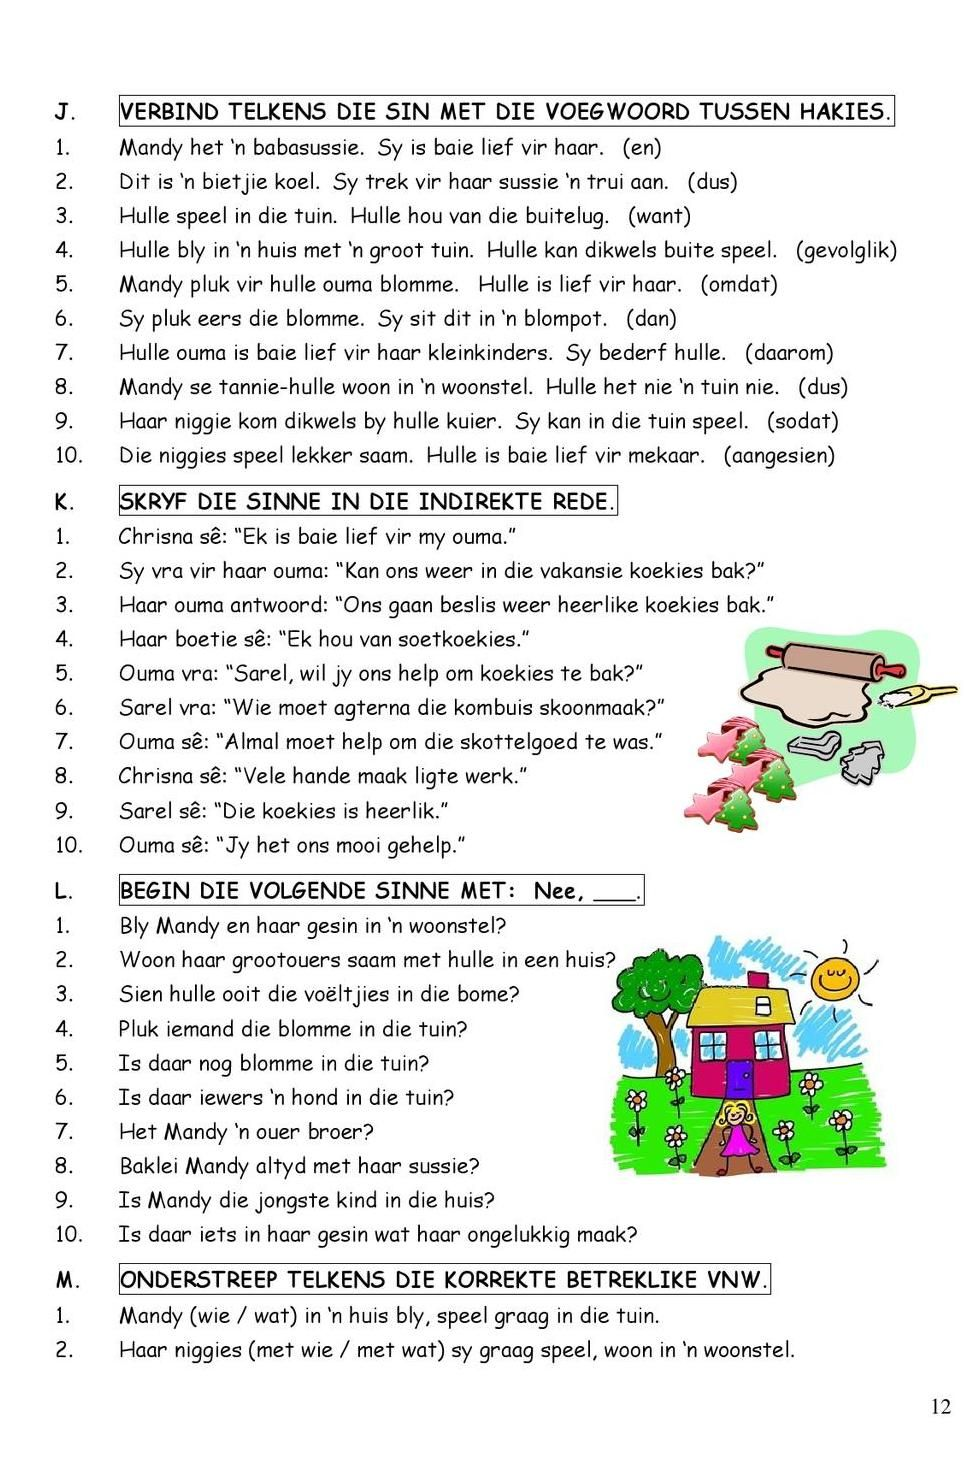 small resolution of https://cute766.info/grade-4-afrikaans-lesson-quiz/